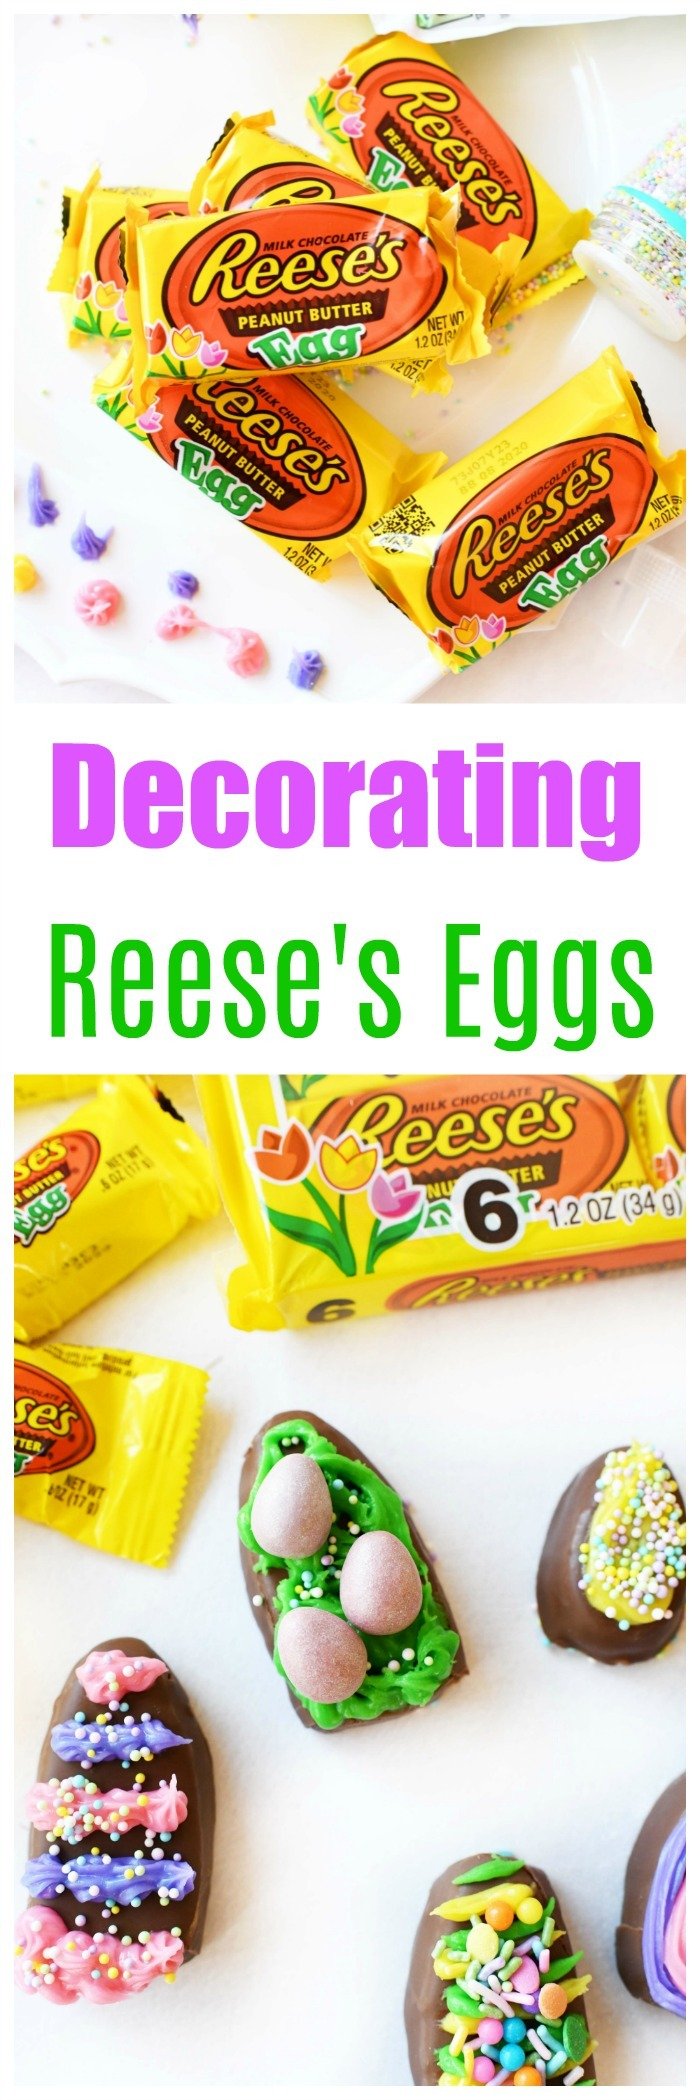 How to Decorate HERSHEY® REESE'S Easter Eggs